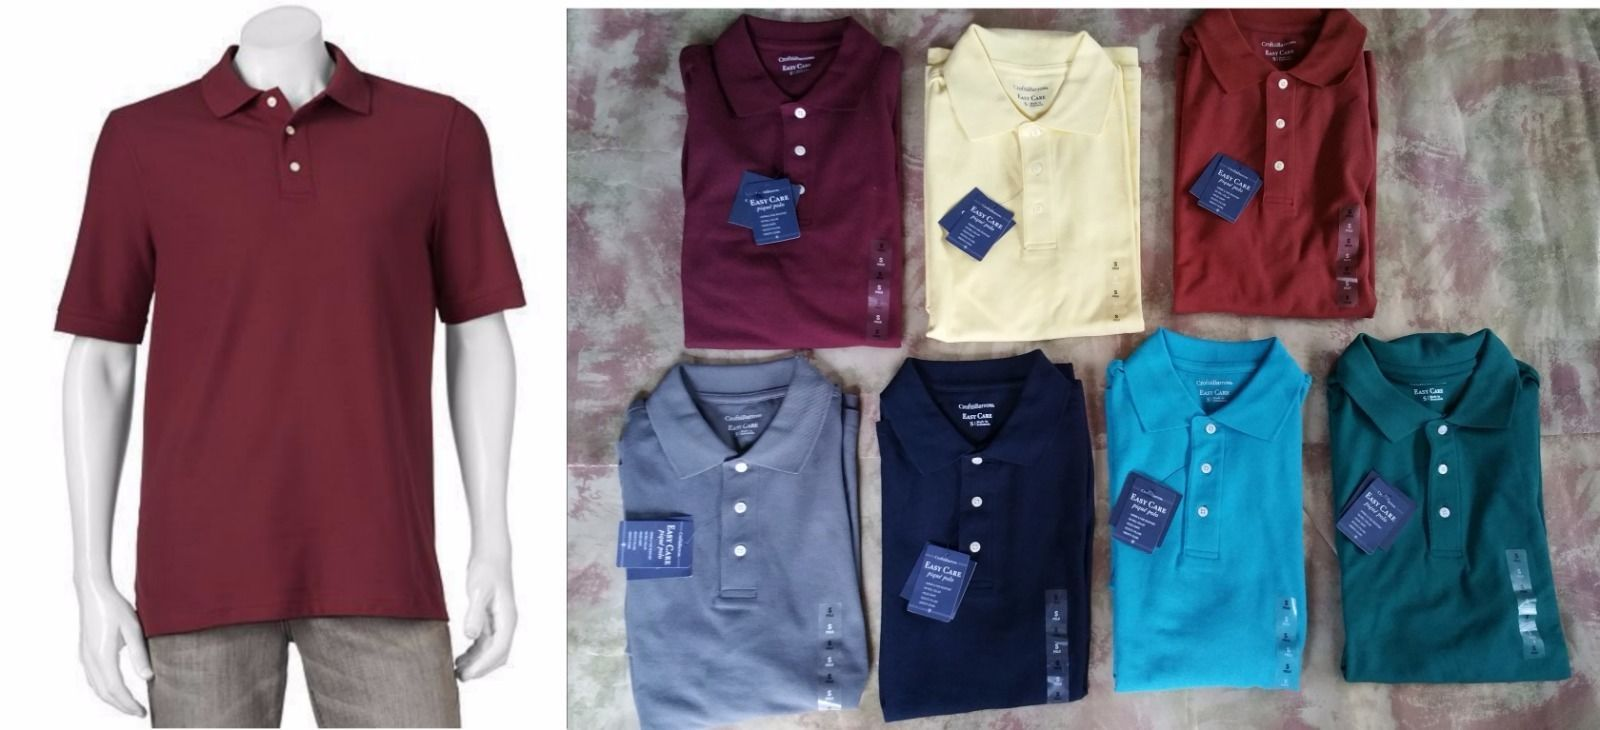 Croft&Barrow Men Polo Shirt-Easy Care Pique Knit Navy Maroon Yellow Teal Gray S